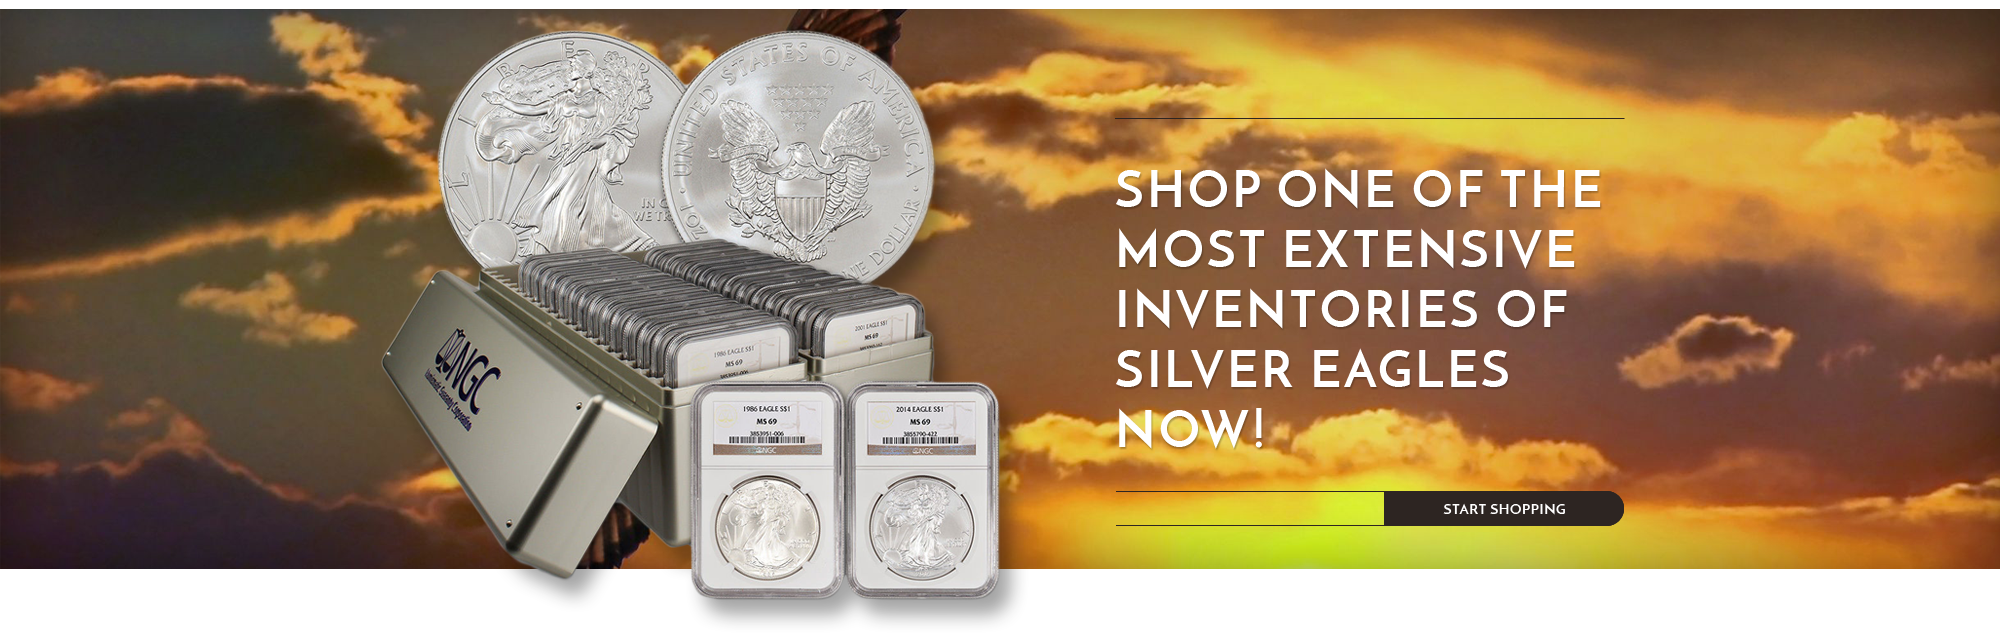 Shop one of the most extensive inventories of Silver Eagles now! - start shopping